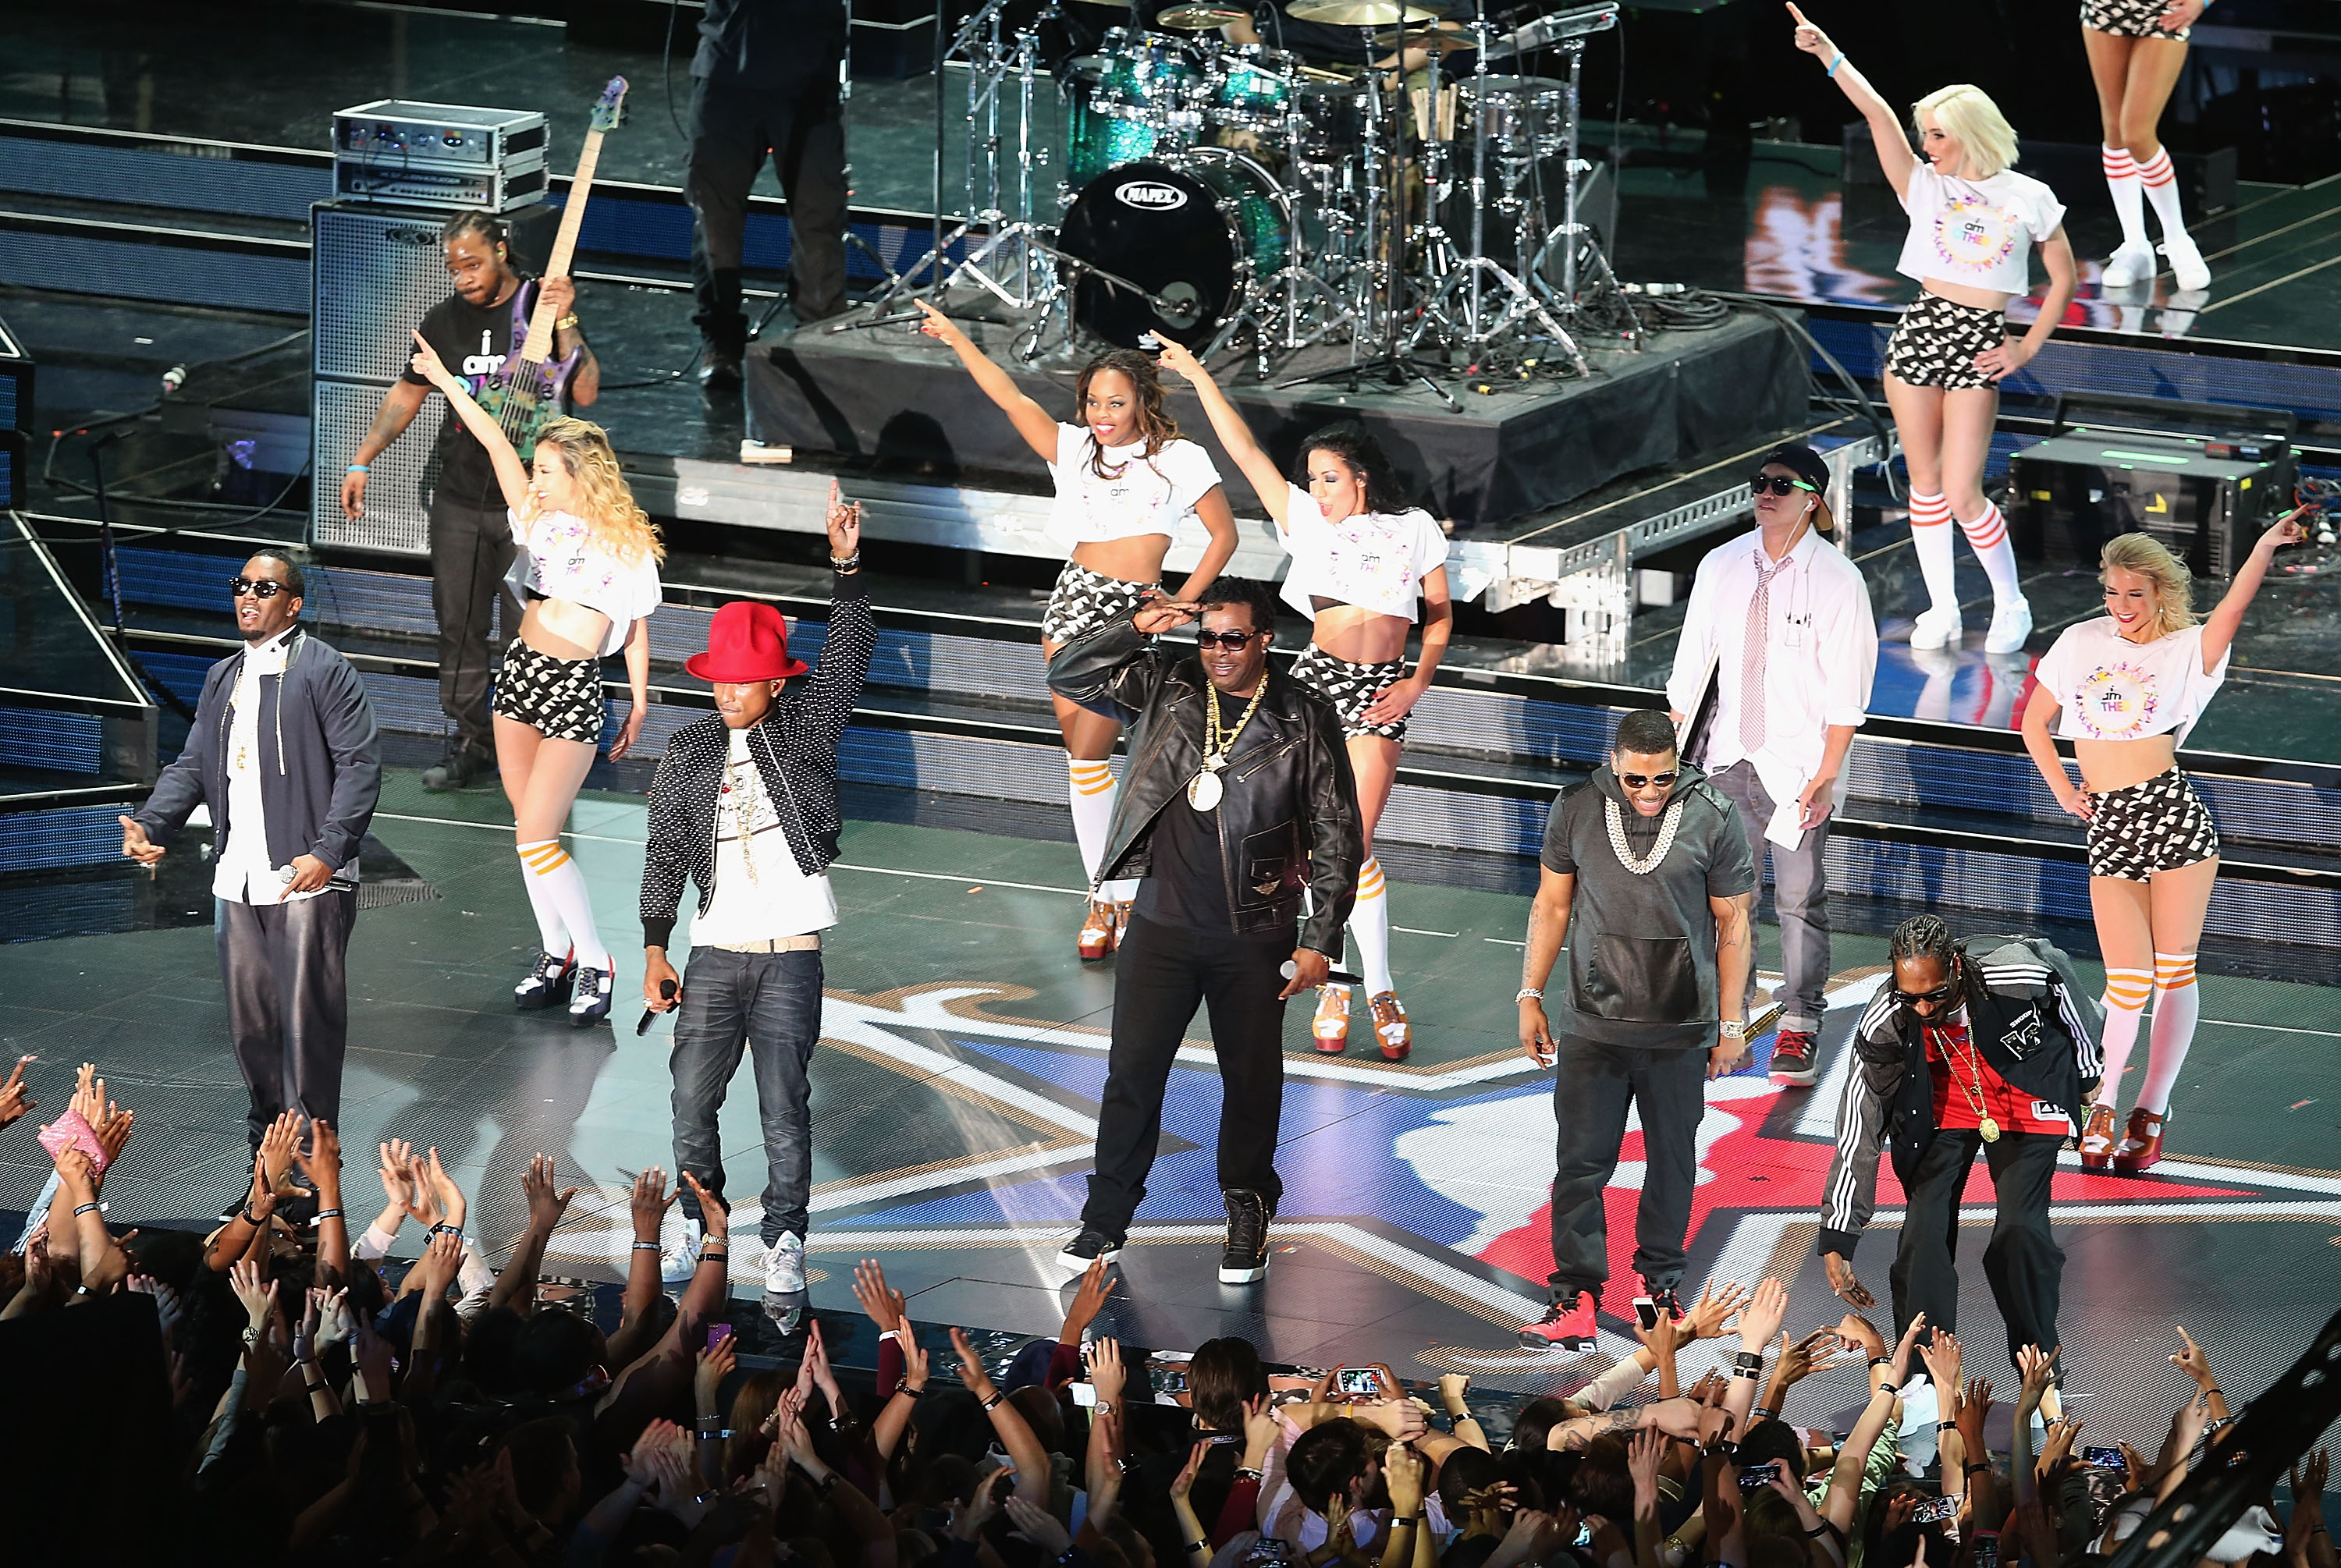 Pharrell, Nelly, P Diddy, Snoop Dogg NBA performan